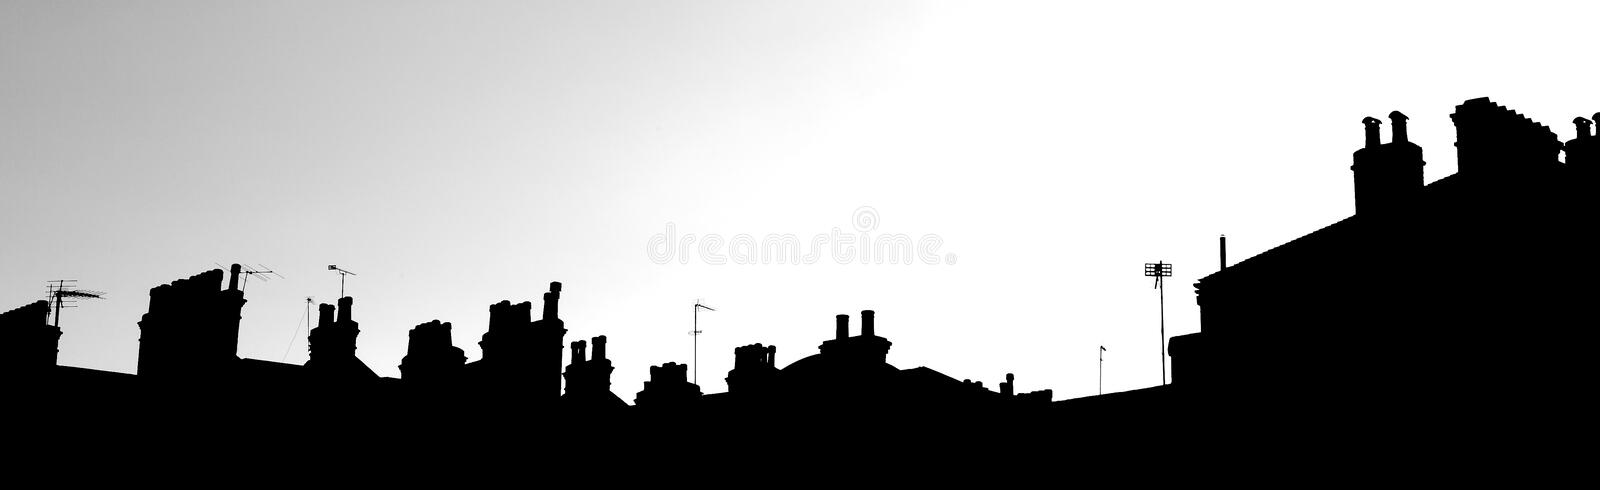 Skyline #1 de Londres foto de stock royalty free